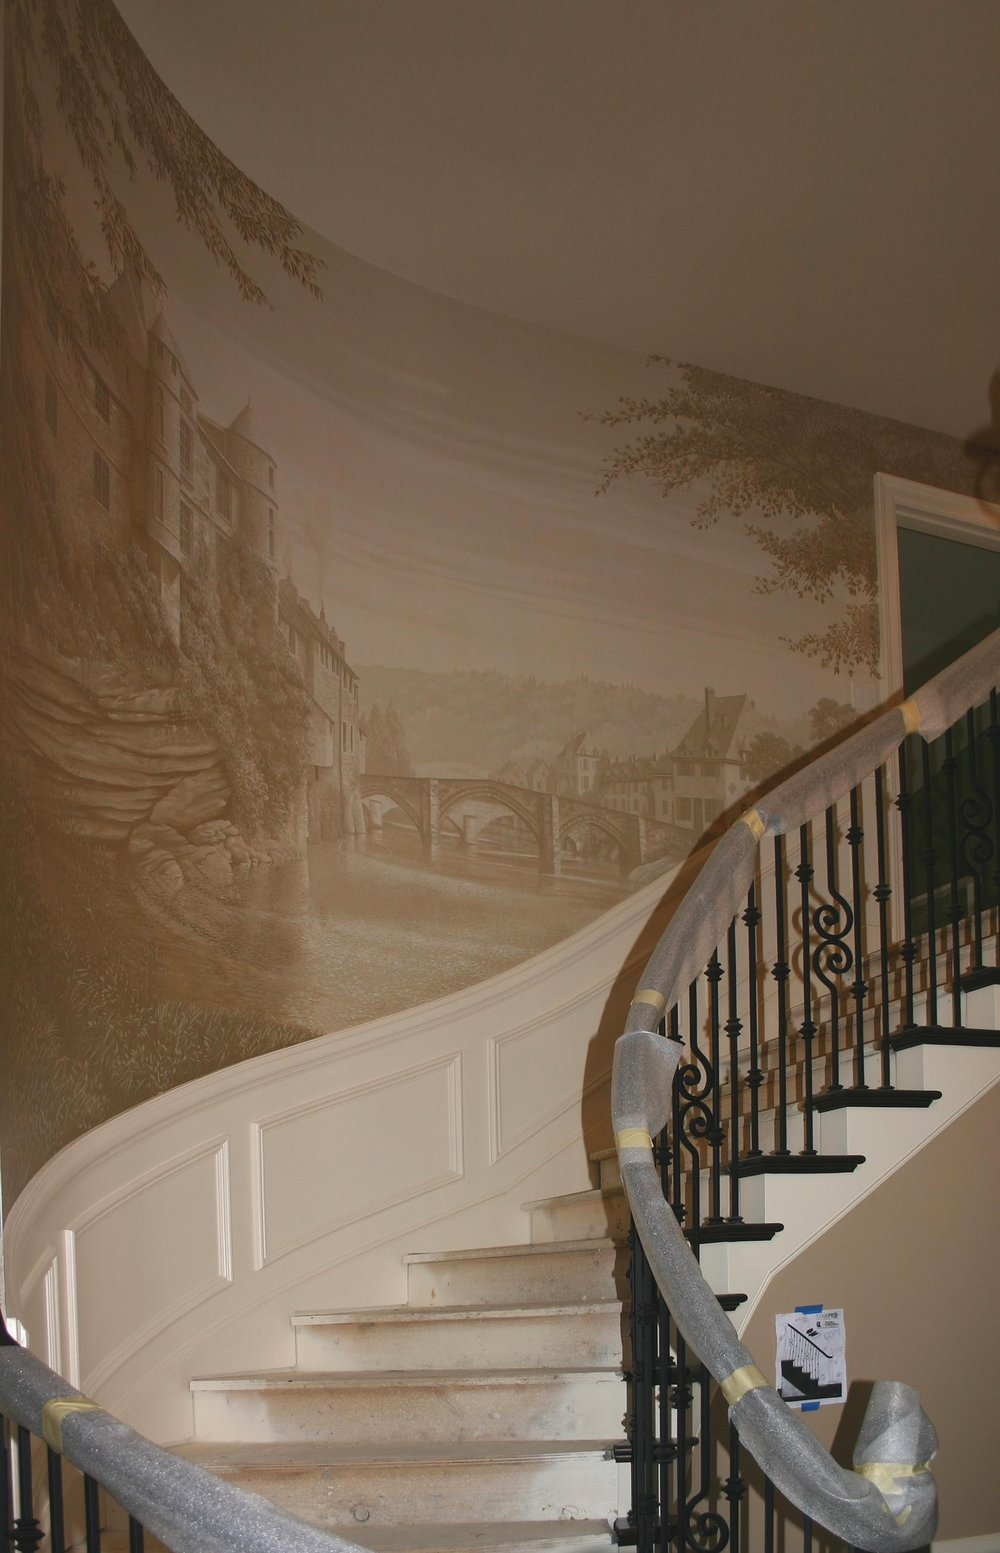 Sepia Toned Stairwell Mural